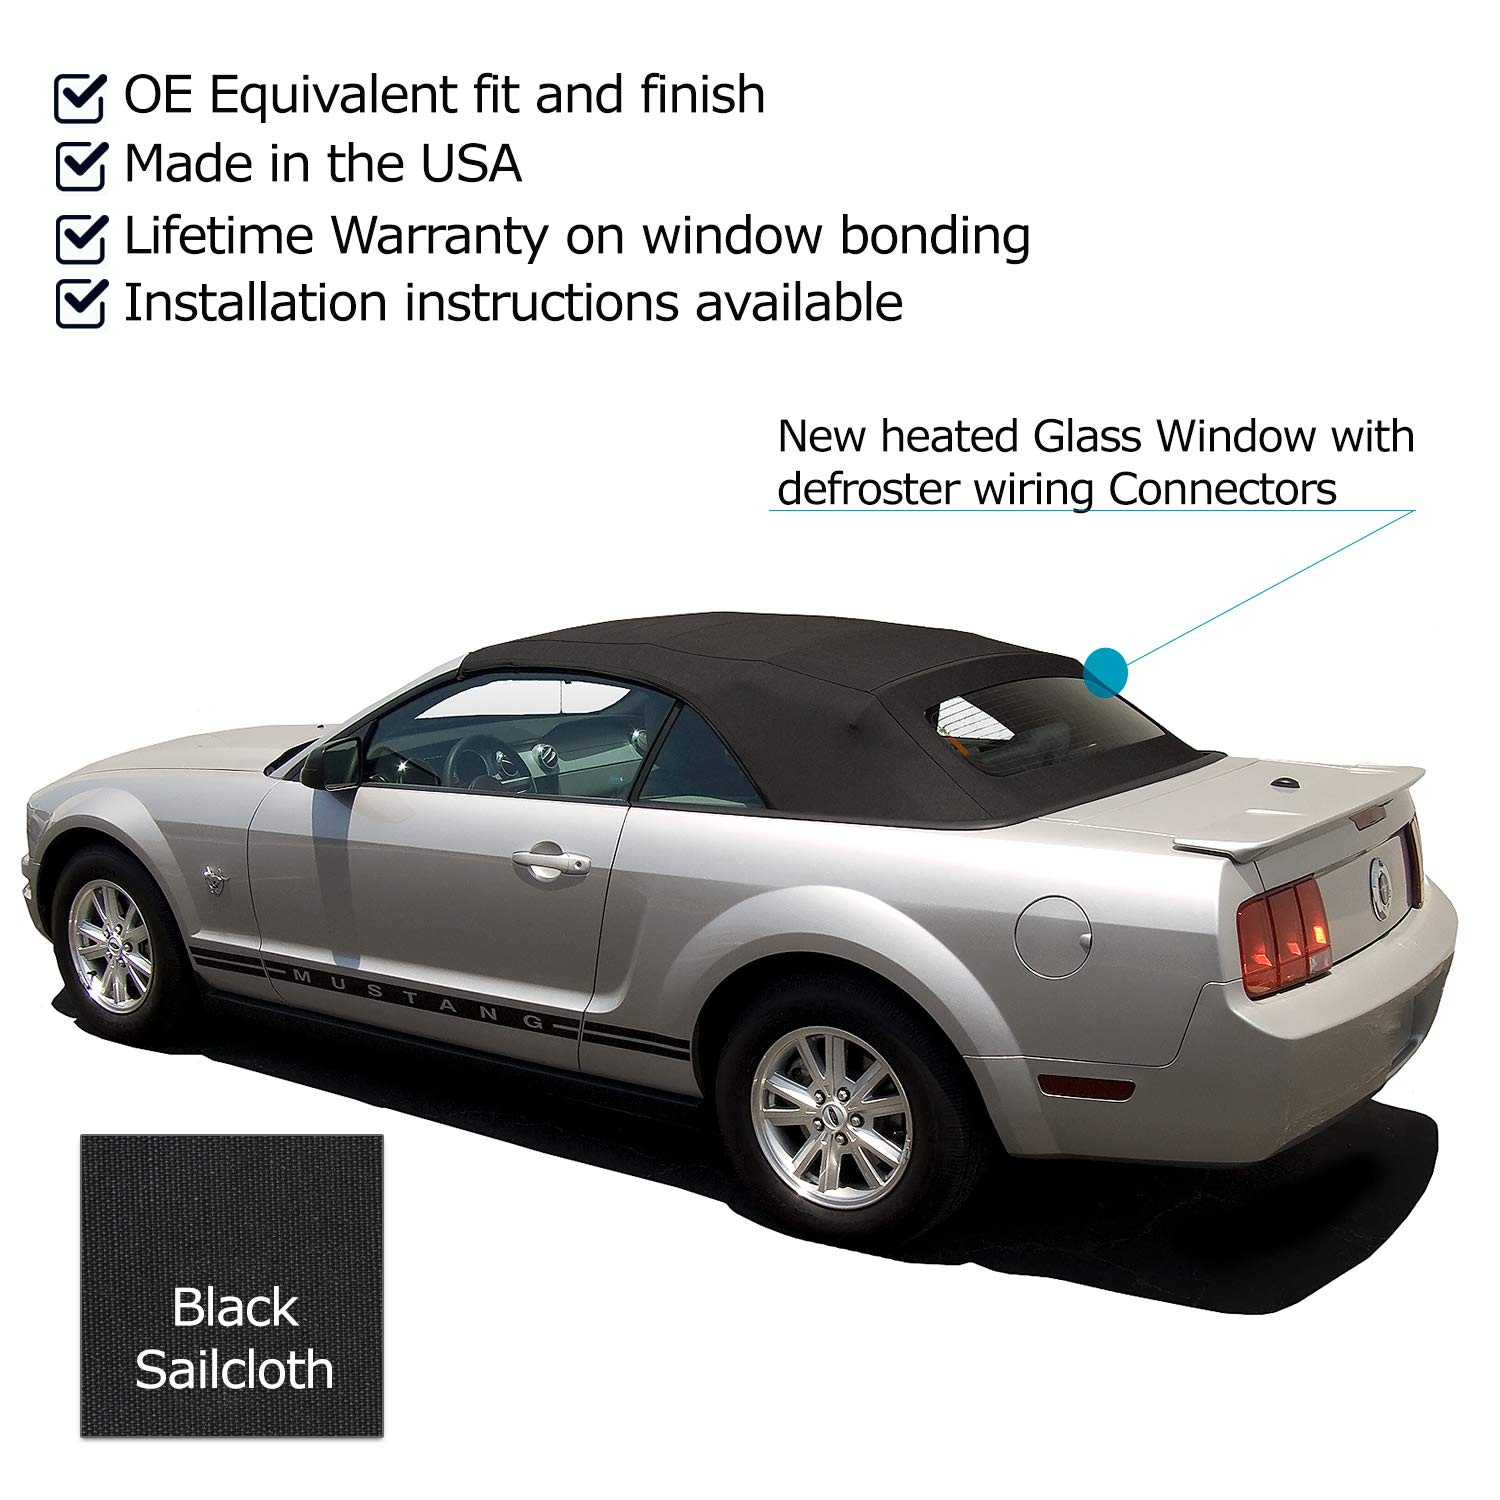 Sierra auto tops convertible soft top replacement compatible with ford mustang 2005 2014 all models w heated glass window sailcloth vinyl black